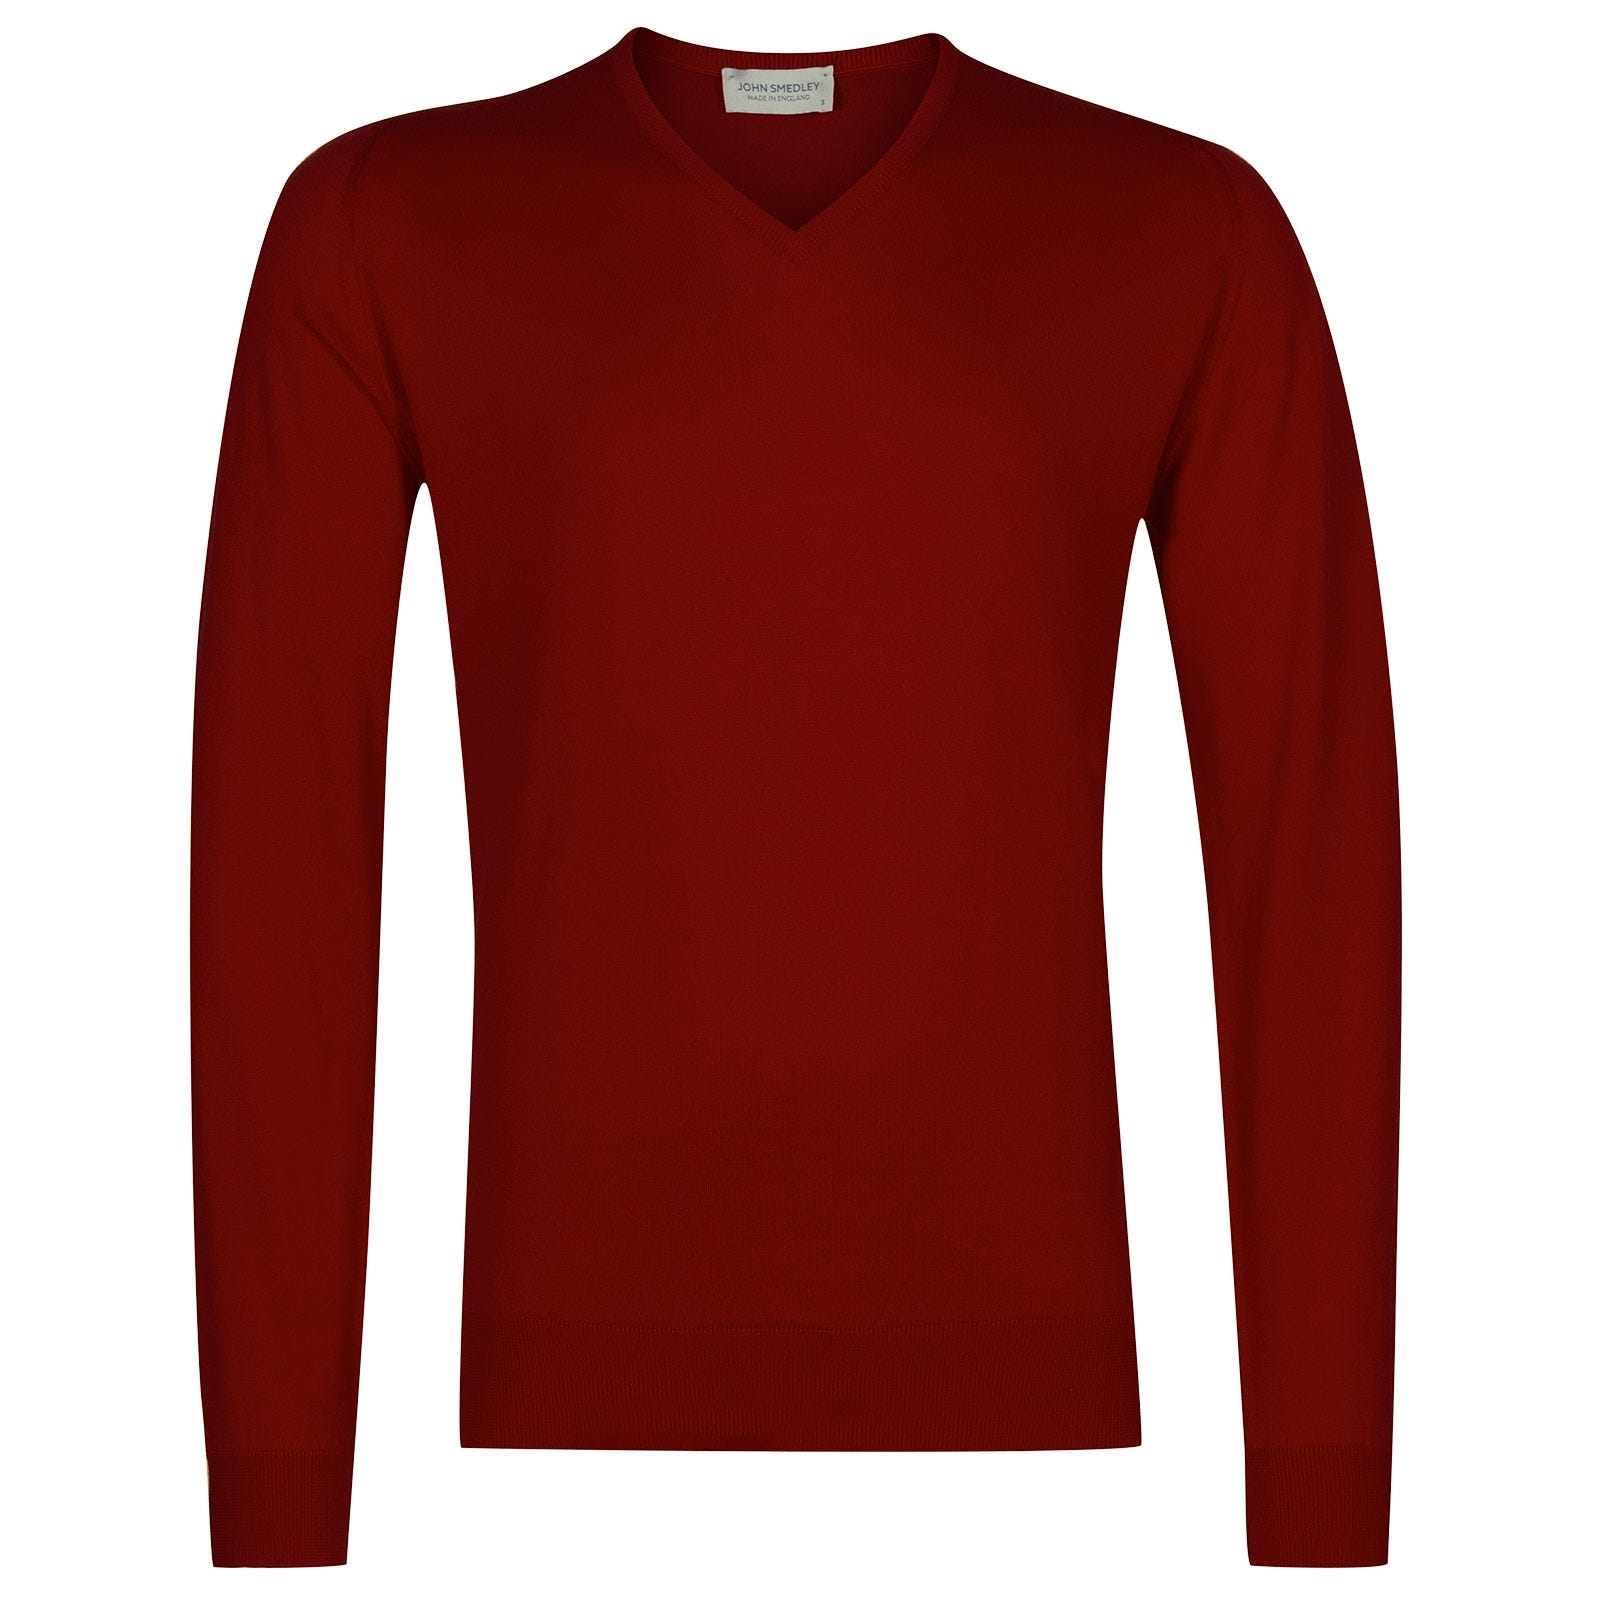 John Smedley Woburn Sea Island Cotton Pullover in Thermal Red-XL